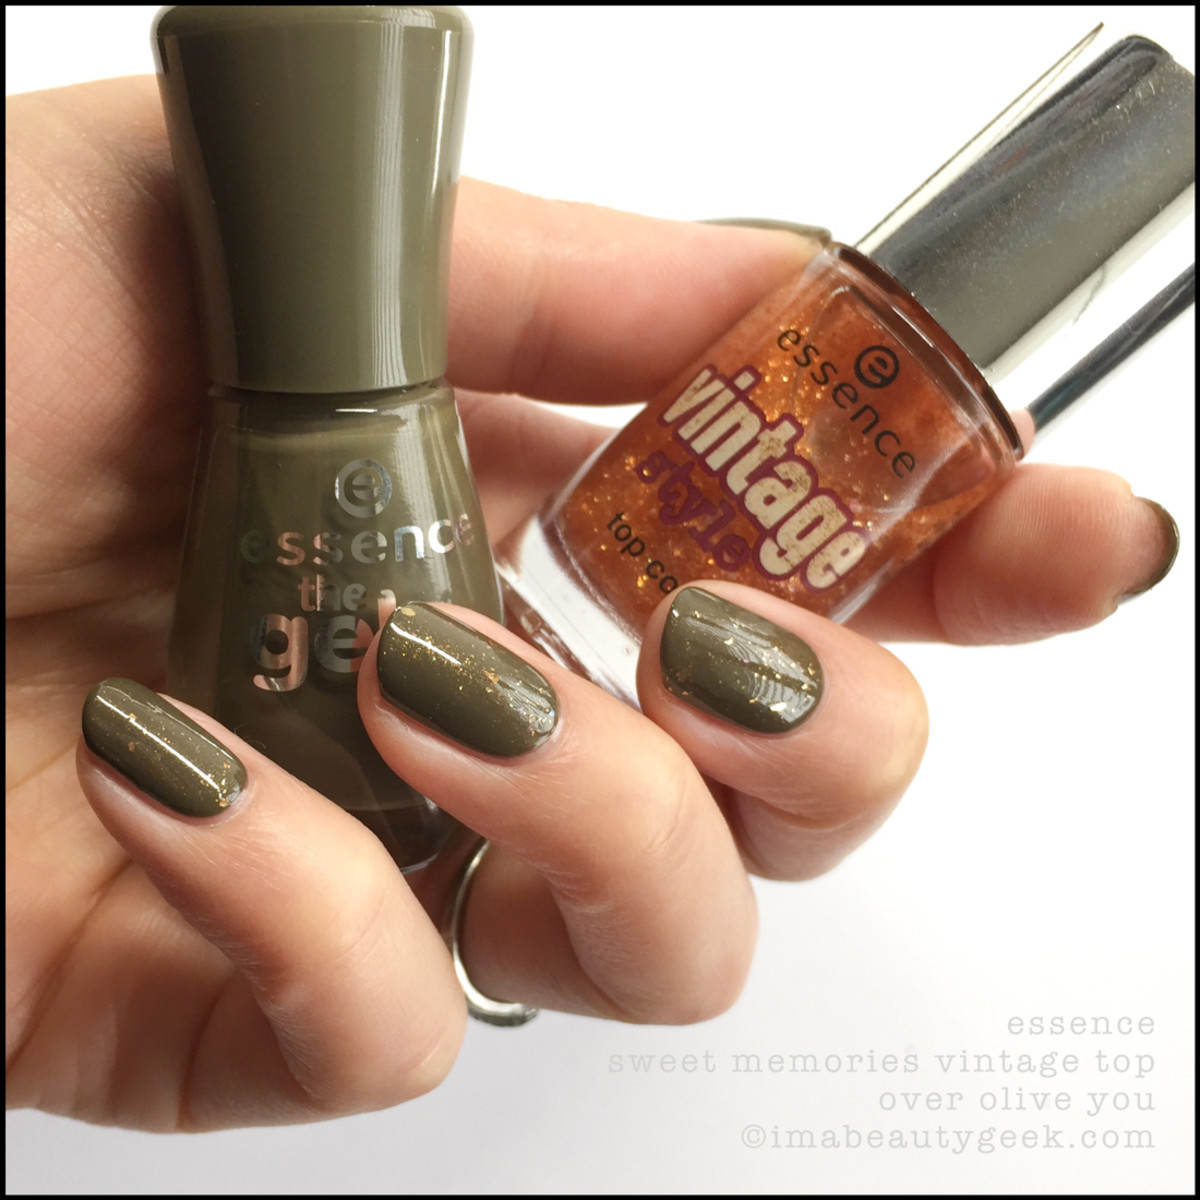 Essence Vintage Sweet Memories Top over Essence Olive You